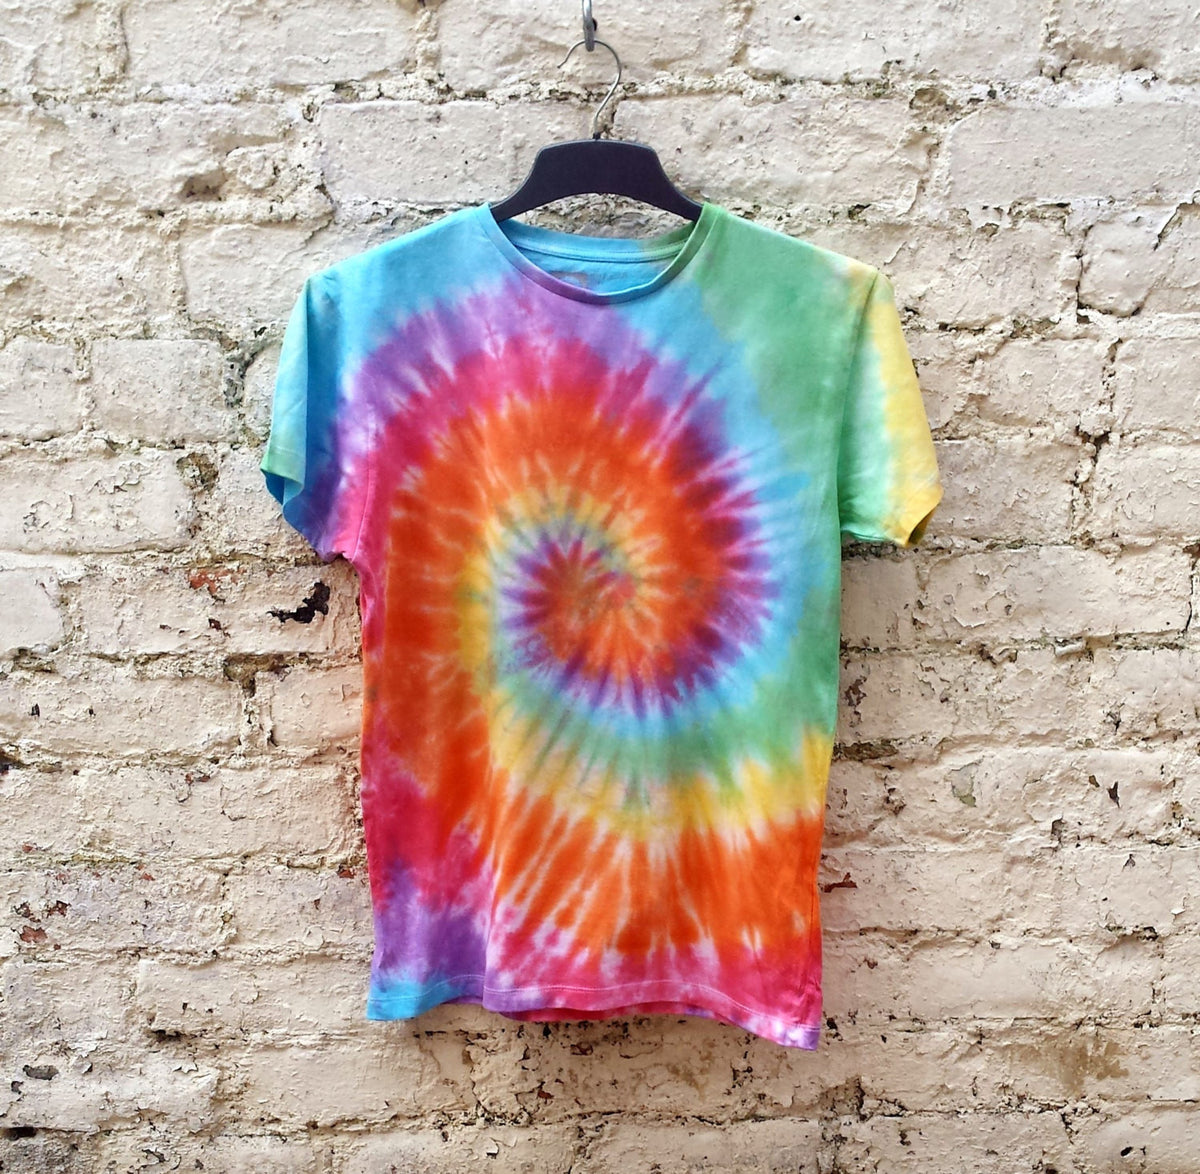 Rainbow Tie Dye Shirt Hippie Tshirt Unisex T-shirt ALL SIZES Festival Clothing Trippy Psychedelic Mens Gift LGBT trippy shirt gift OwD33OufK